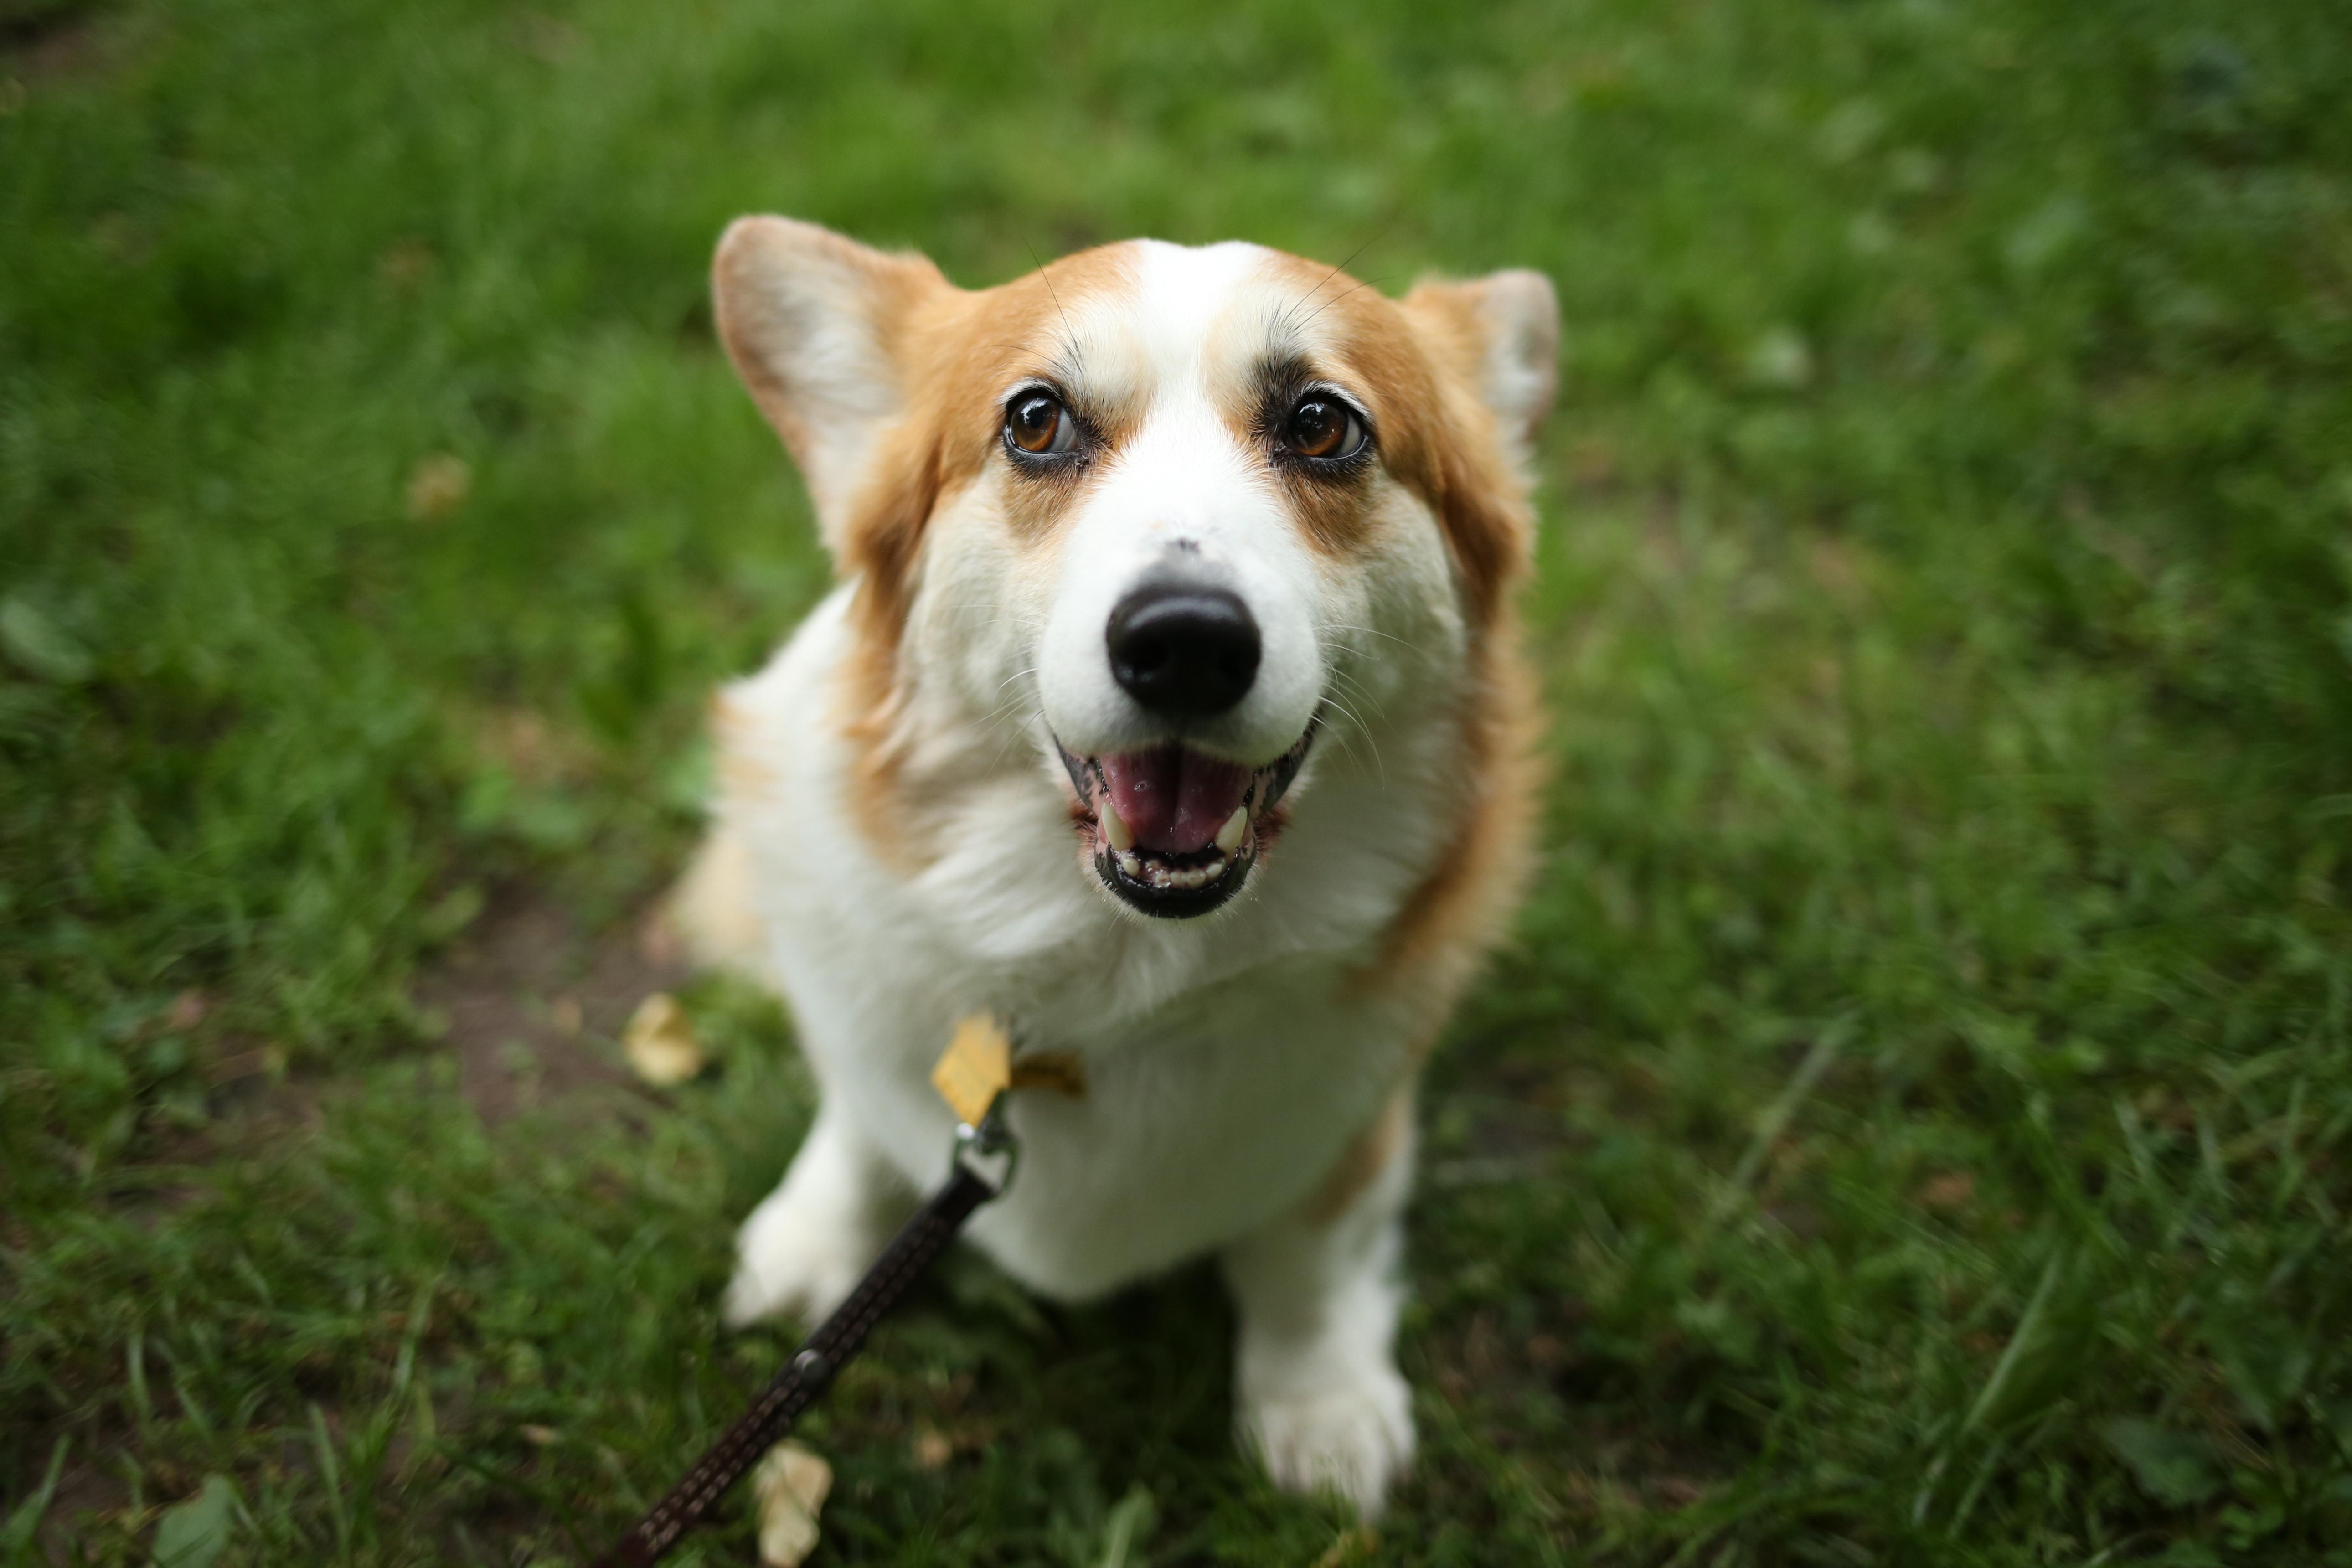 "Meet Abbie, a six-year-old Pembroke Welsh Corgi who we can't help but make ""dear Abby"" jokes about! She was adopted in early May from a woman in Pennsylvania who typically shows and breeds her dogs. So basically, her new family is providing Abbie with a retirement home where she gets lots of love and belly rubs! Seriously, Abbie only cares about two things: being petted and being petted in bed! When she is not actively seeking out belly rubs, she is climbing anything in sight. She often surprises onlookers by athletically leaping into the air to swallow flies despite her stubby legs -- Abbie, girl, you can do anything you put your mind to! Abbie does loathe the hairdryer though. So far, Abbie has been on several adventures to Meridian Hill Park, Kenilworth Aquatic Gardens (she loved chasing snakes and posing by the lily pads), Rock Creek Park and she even helped her humans score some sweet vinyl at Red Onion Records. You can follow all of Abbie's shenanigans on her Instagram account, @downtownabbie. If you or someone you know has a pet you'd like featured, email us at dcrefined@gmail.com or tag #DCRUFFined and your furbaby could be the next spotlighted! (Image: Amanda Andrade-Rhoades/ DC Refined)"